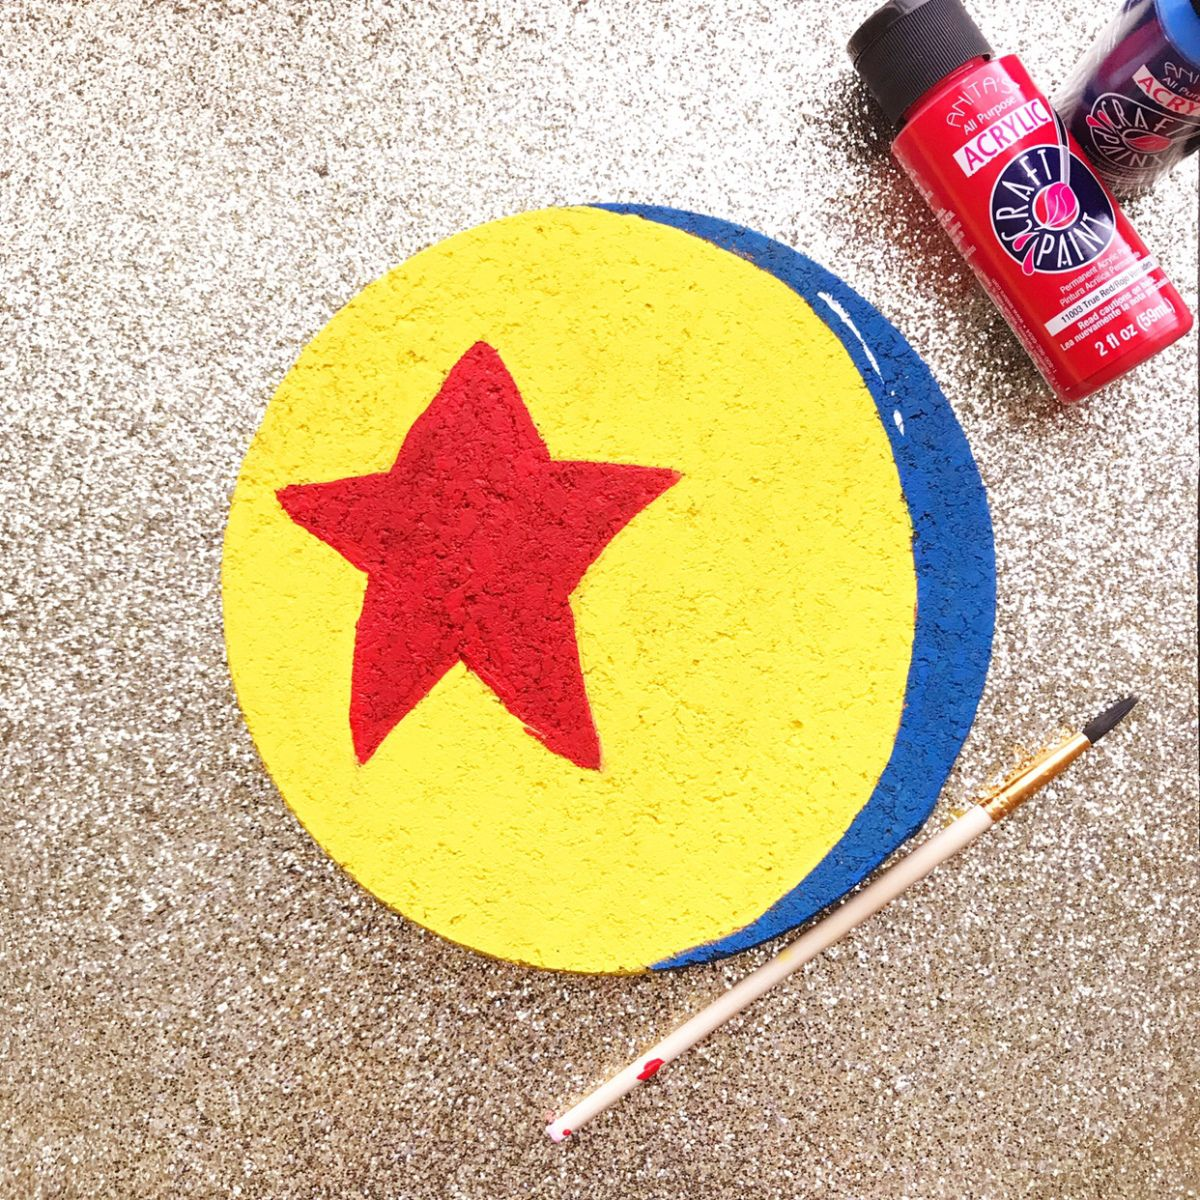 Easy Disney Diy Pixar S Luxo Ball Pin Board For All Of Your Favorite Toy Story Pins Toy Story Crafts Toy Story Room Toy Story Theme